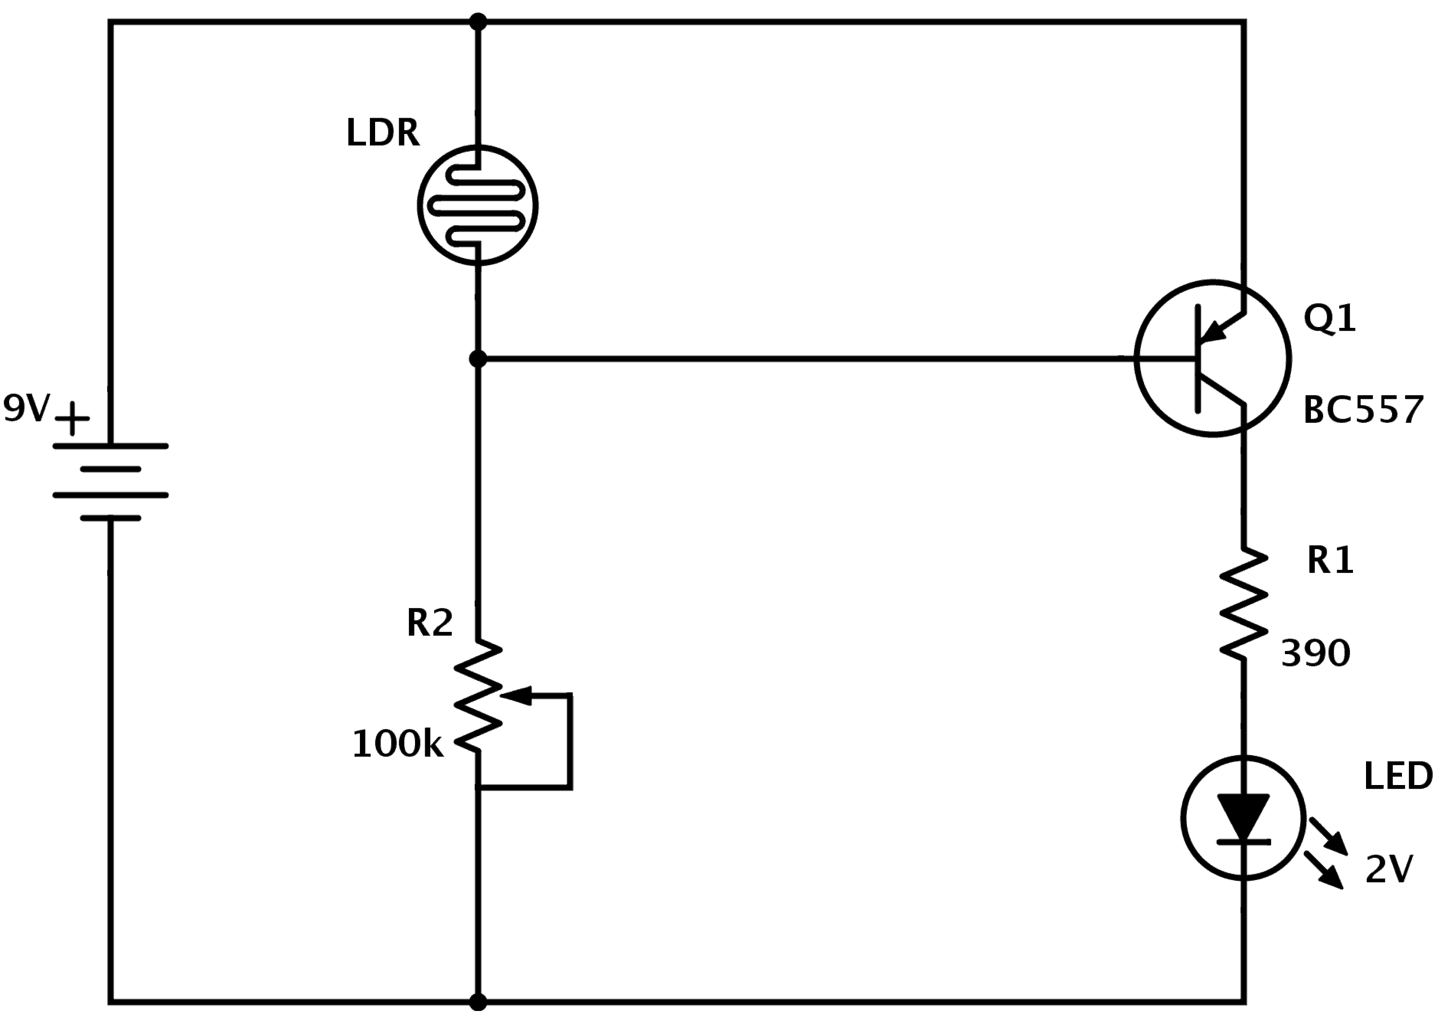 Ldr Circuit Diagram Build Electronic Circuits Fire Alarm Using Thermistor 038 Ne555 With Pnp Transistor Dark Detector